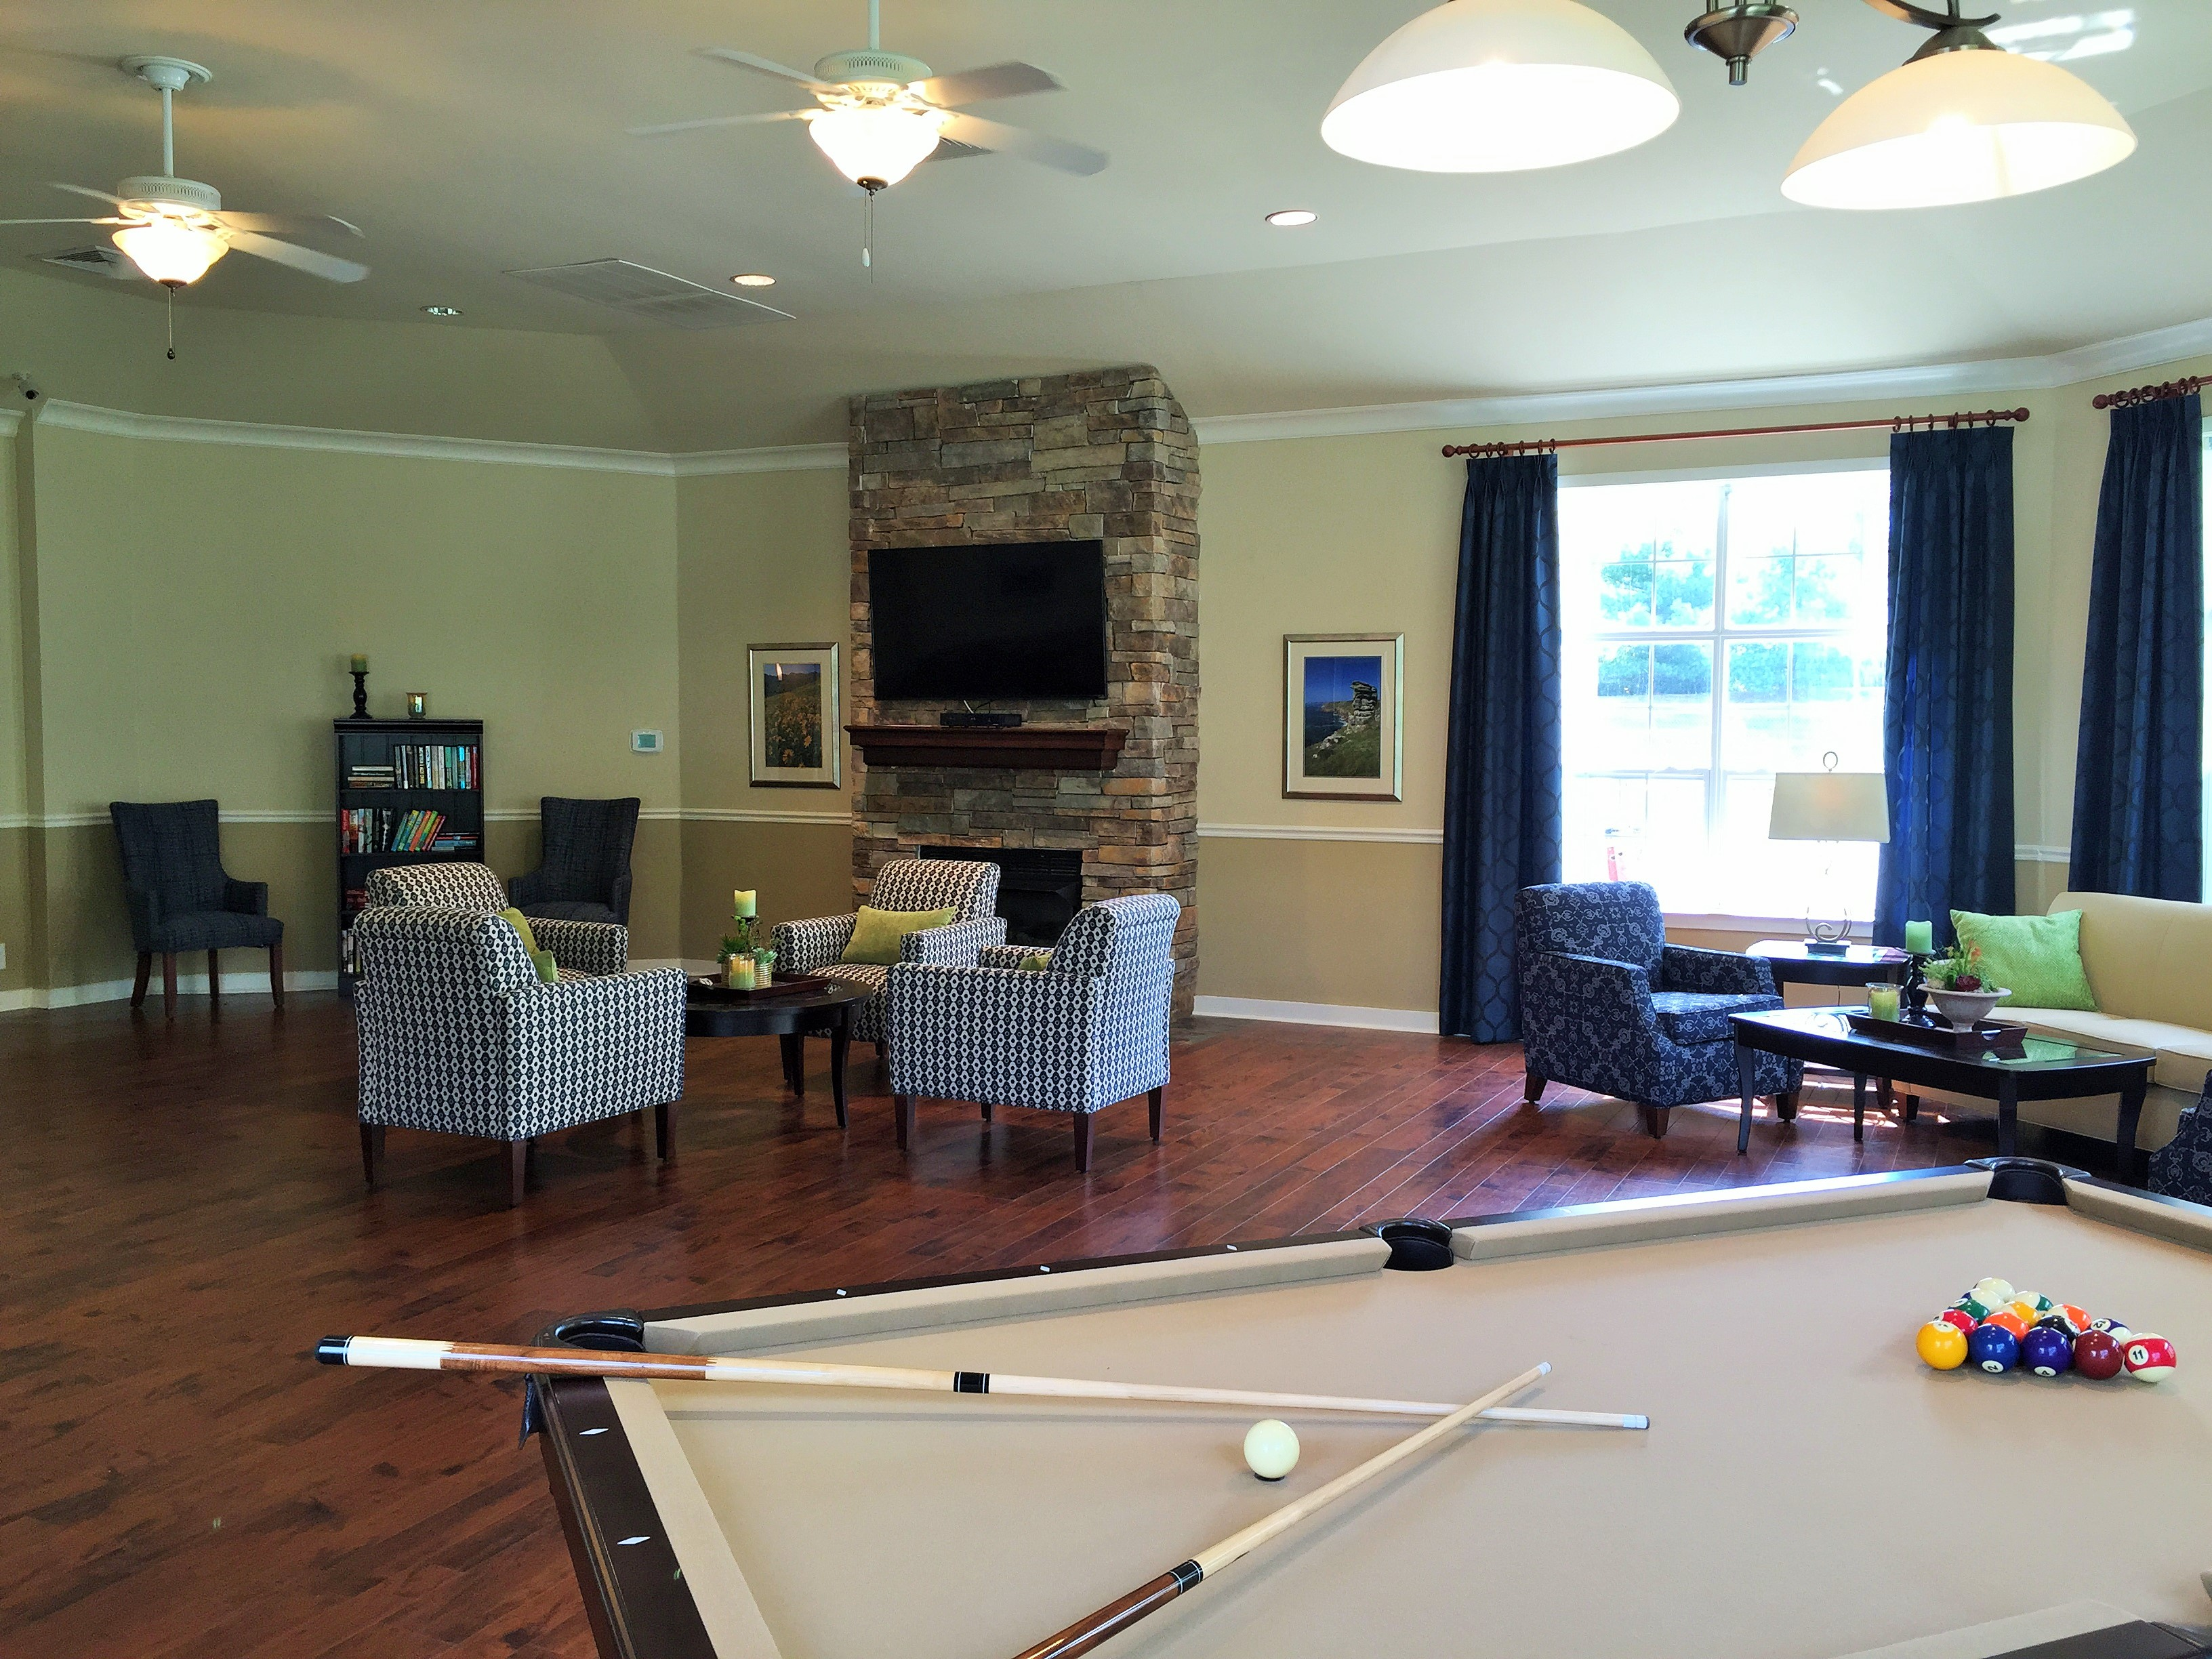 The club at main street apartment living at its finest for The family room main street